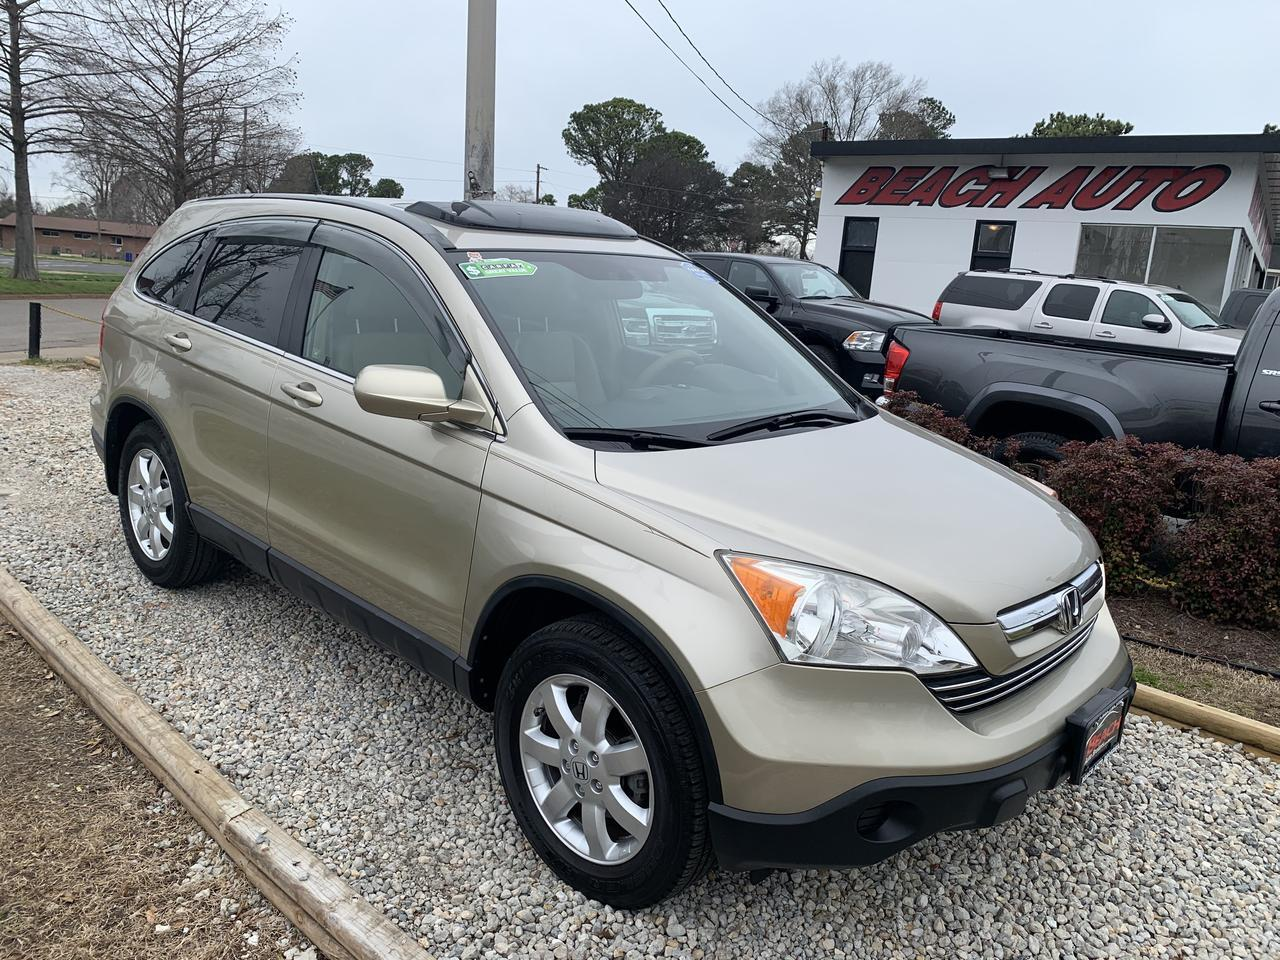 2007 HONDA CR-V EX-L, WARRANTY, LEATHER, HEATED SEATS, AUX PORT, SUNROOF, 1 OWNER ONLY 34K ORIGINAL MILES! Norfolk VA